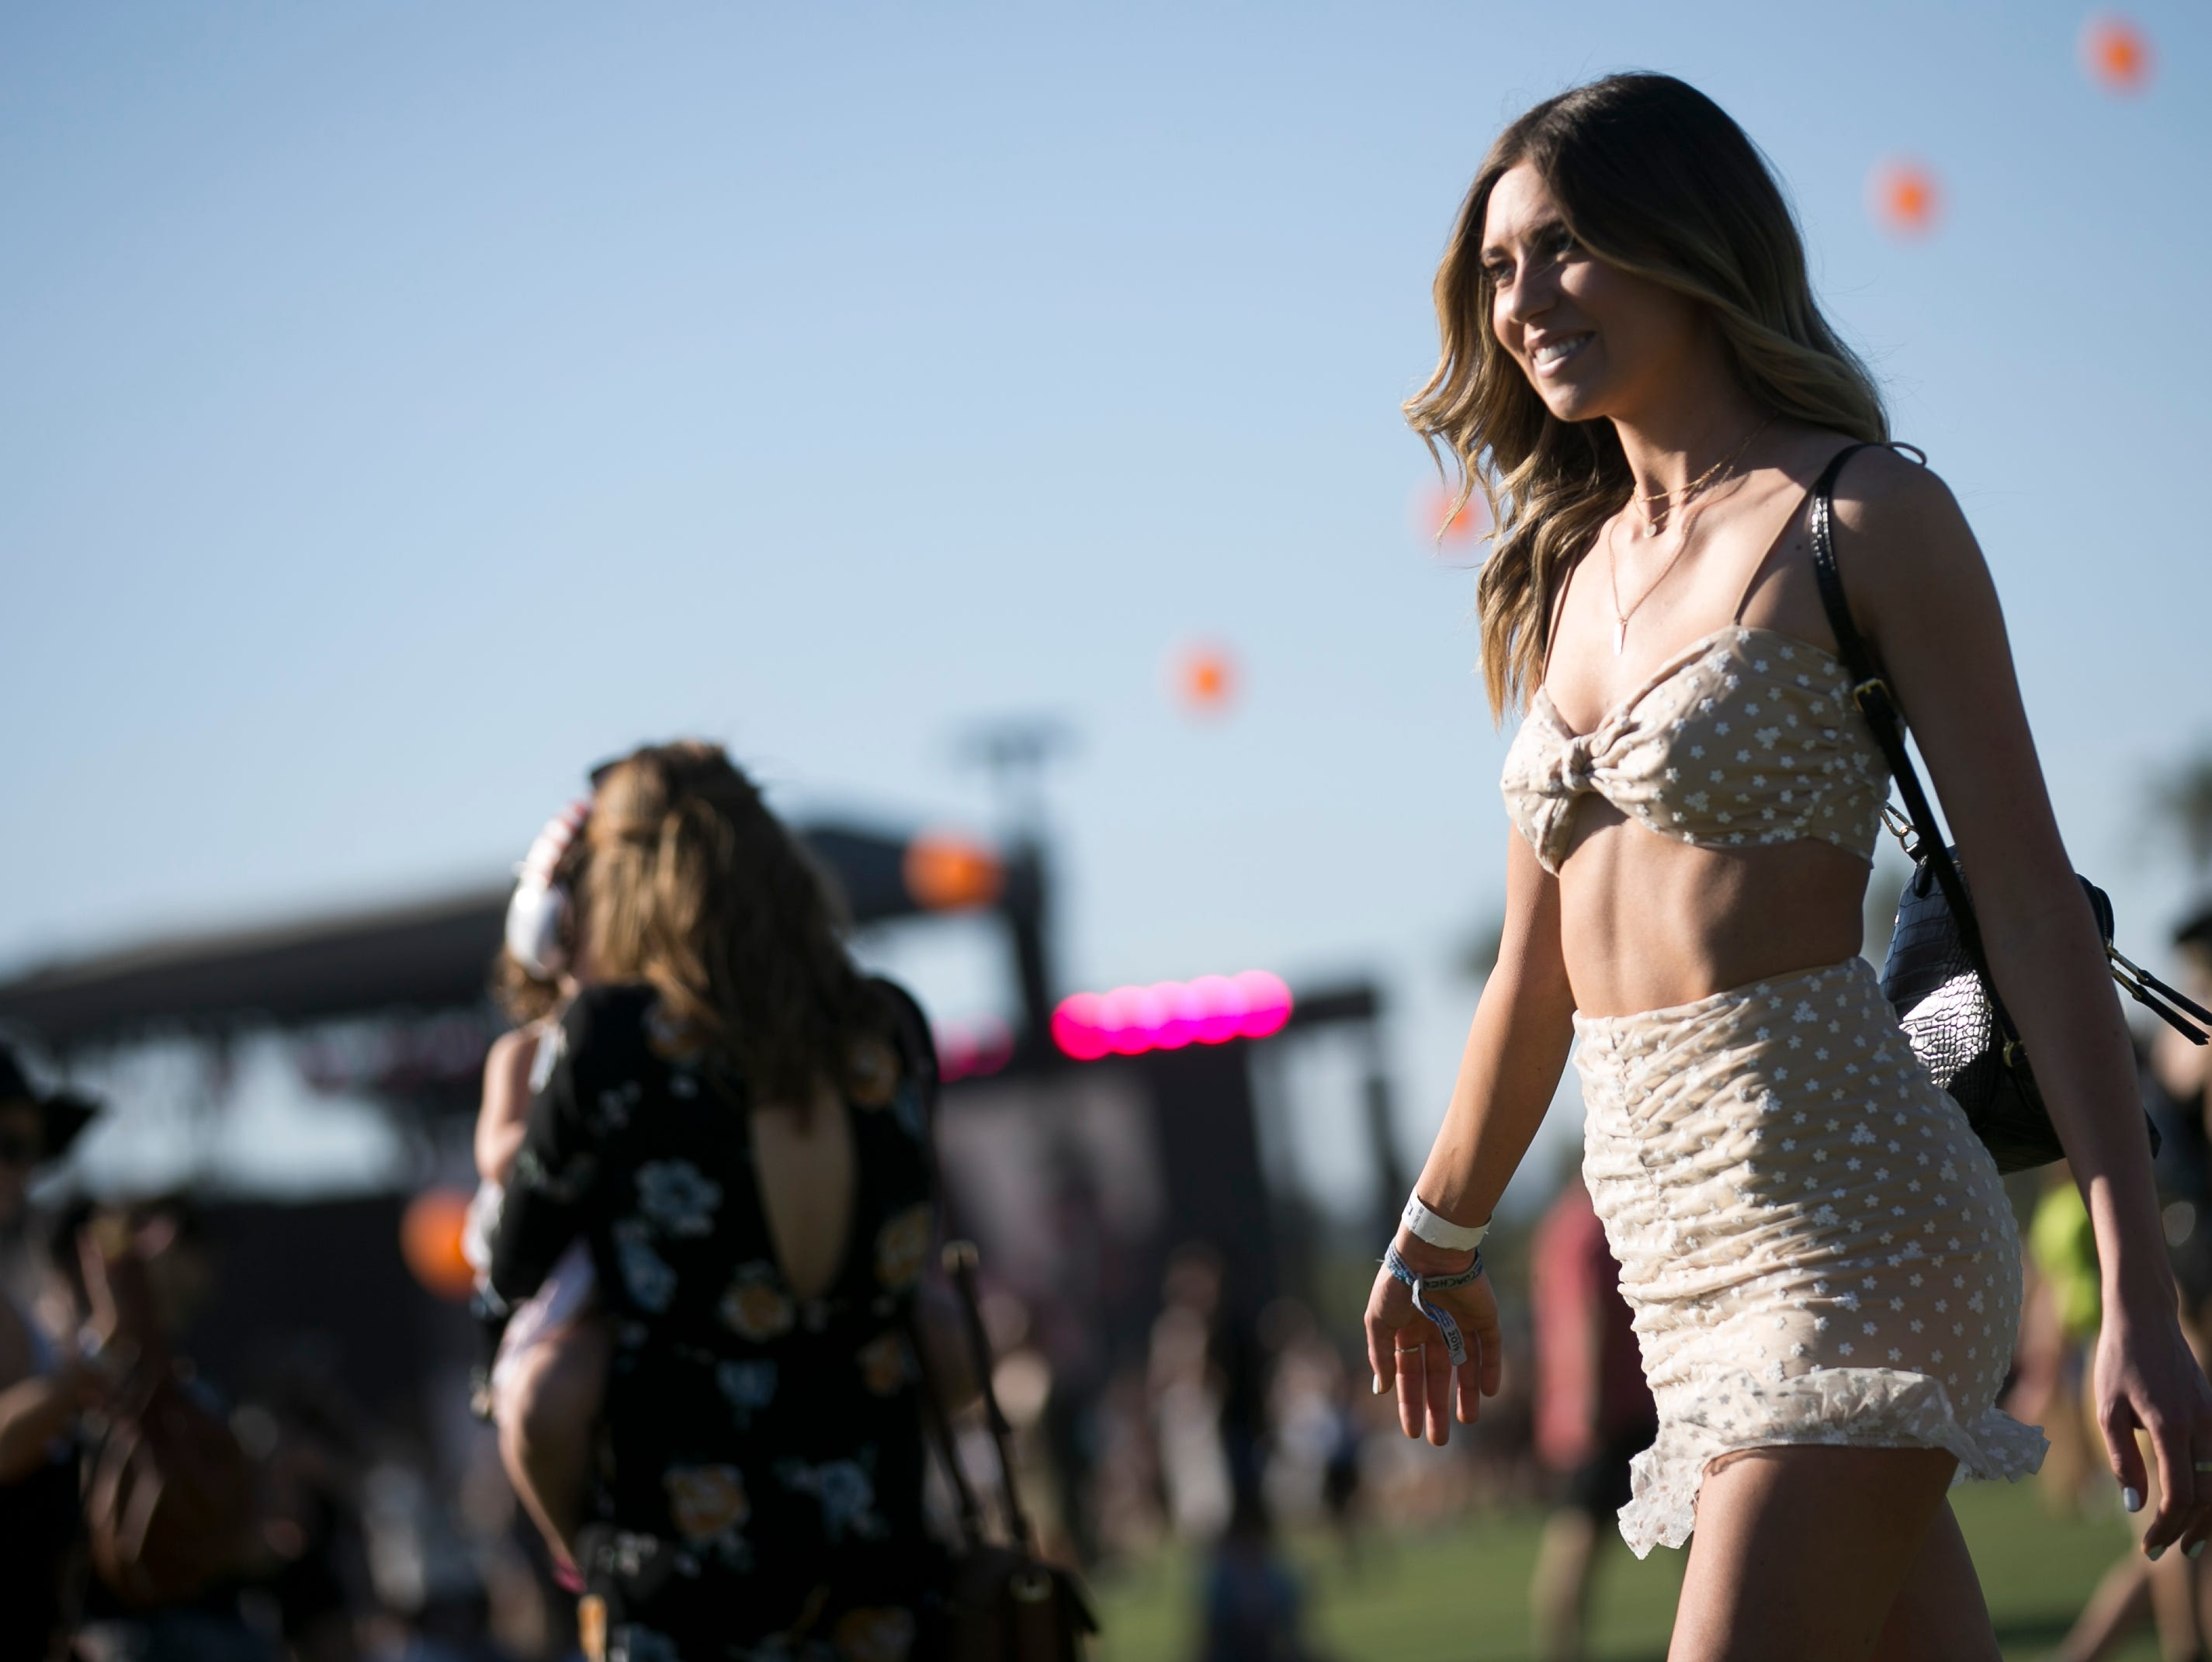 Bailey Roberts, from Las Vegas, poses from photo at Coachella 2019 in Indio, Calif. on Sat. April 13, 2019.